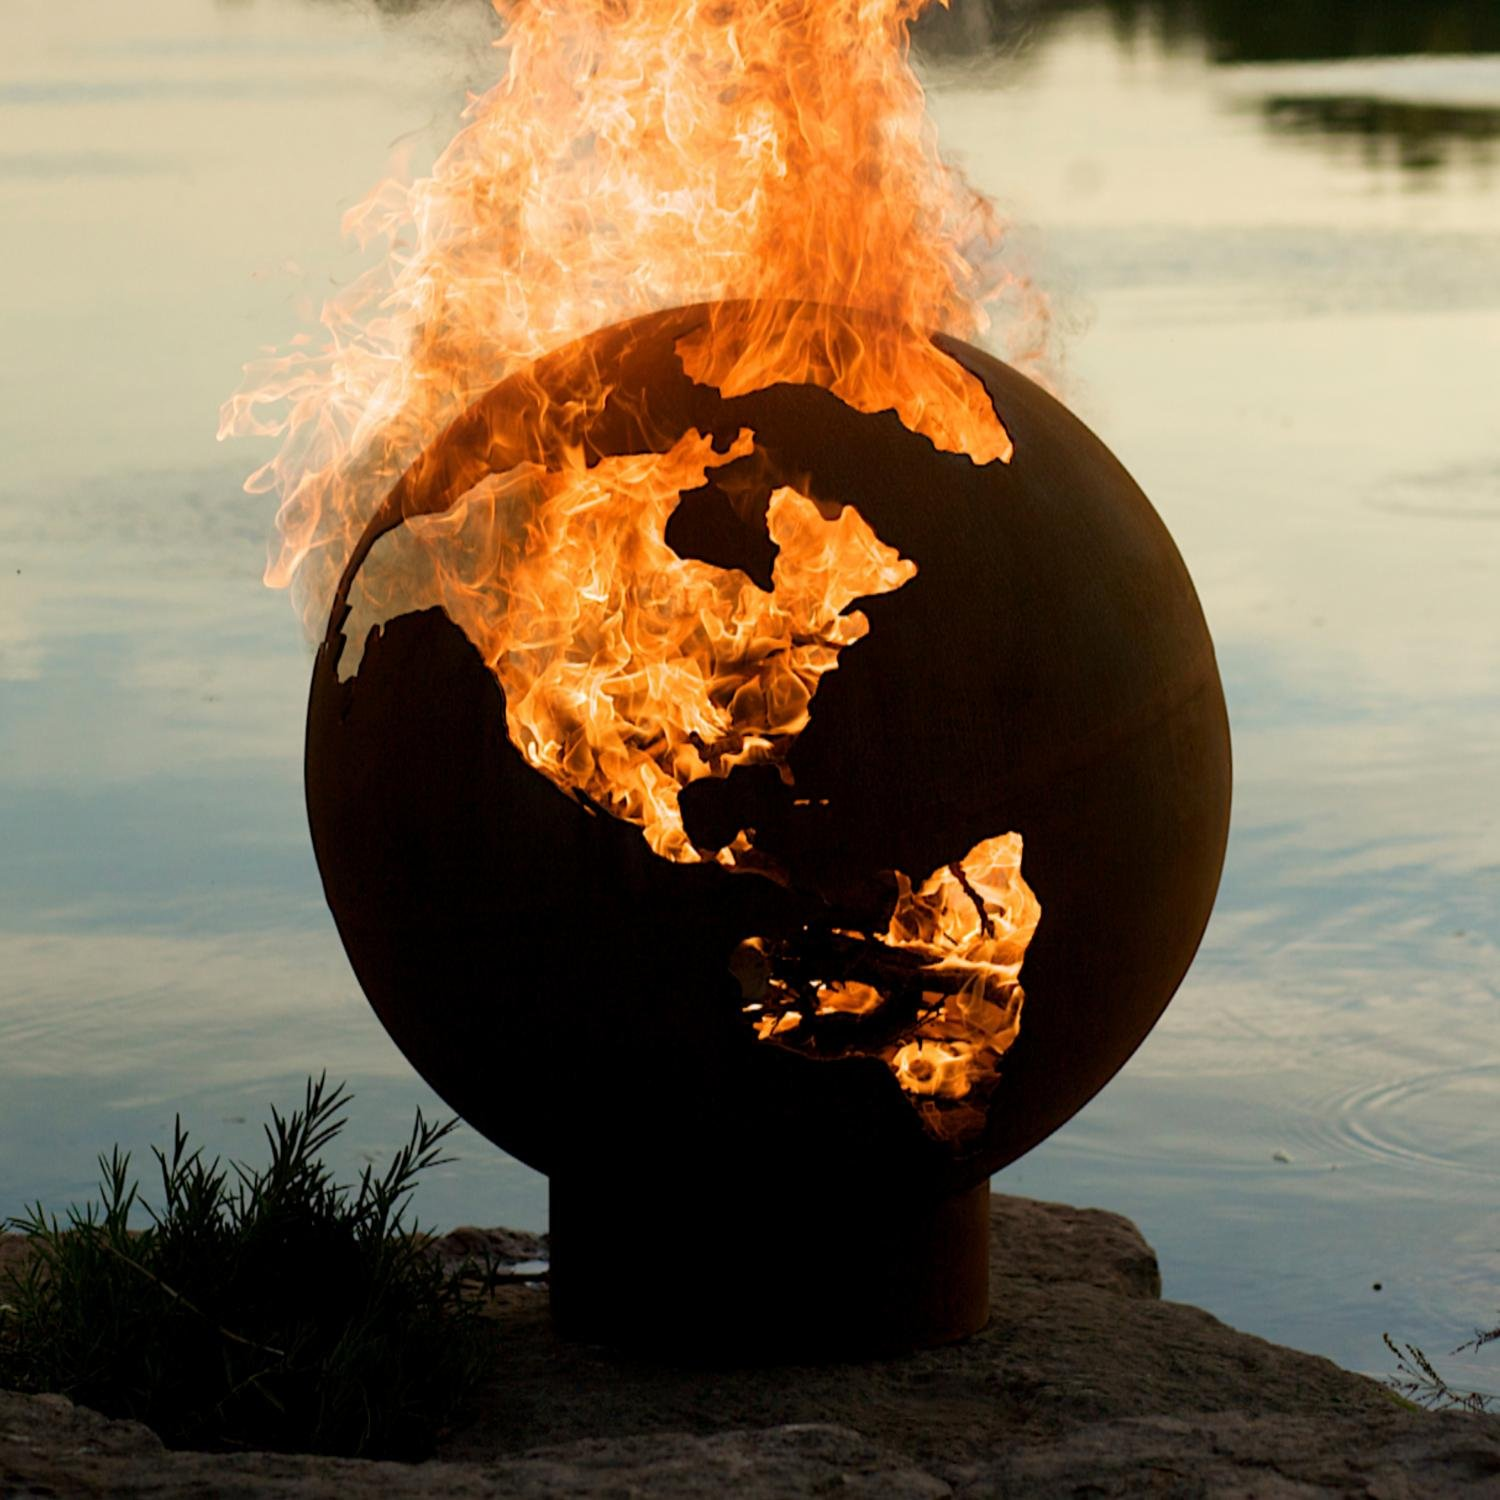 Amazon.com : Fire Pit Art Third Rock Fire Pit : Fire Pit Globe : Garden &  Outdoor - Amazon.com : Fire Pit Art Third Rock Fire Pit : Fire Pit Globe